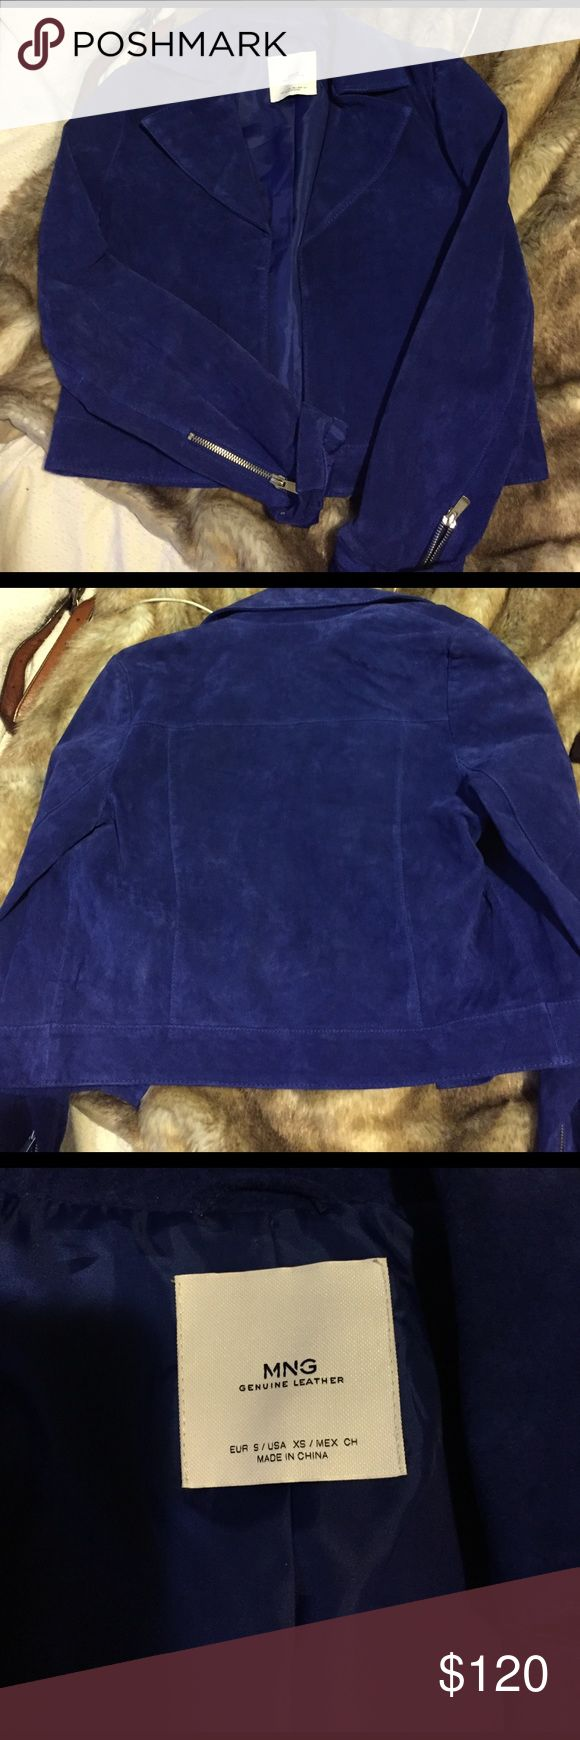 Mango Suede Cropped Leather Jacket, Bright Blue Great to pair with a dress and heels, definitely a statement jacket. Real suede leather. Lapel is slightly bent and may need to be ironed down (purchased this way). Good condition. Happy shopping! Mango Jackets & Coats